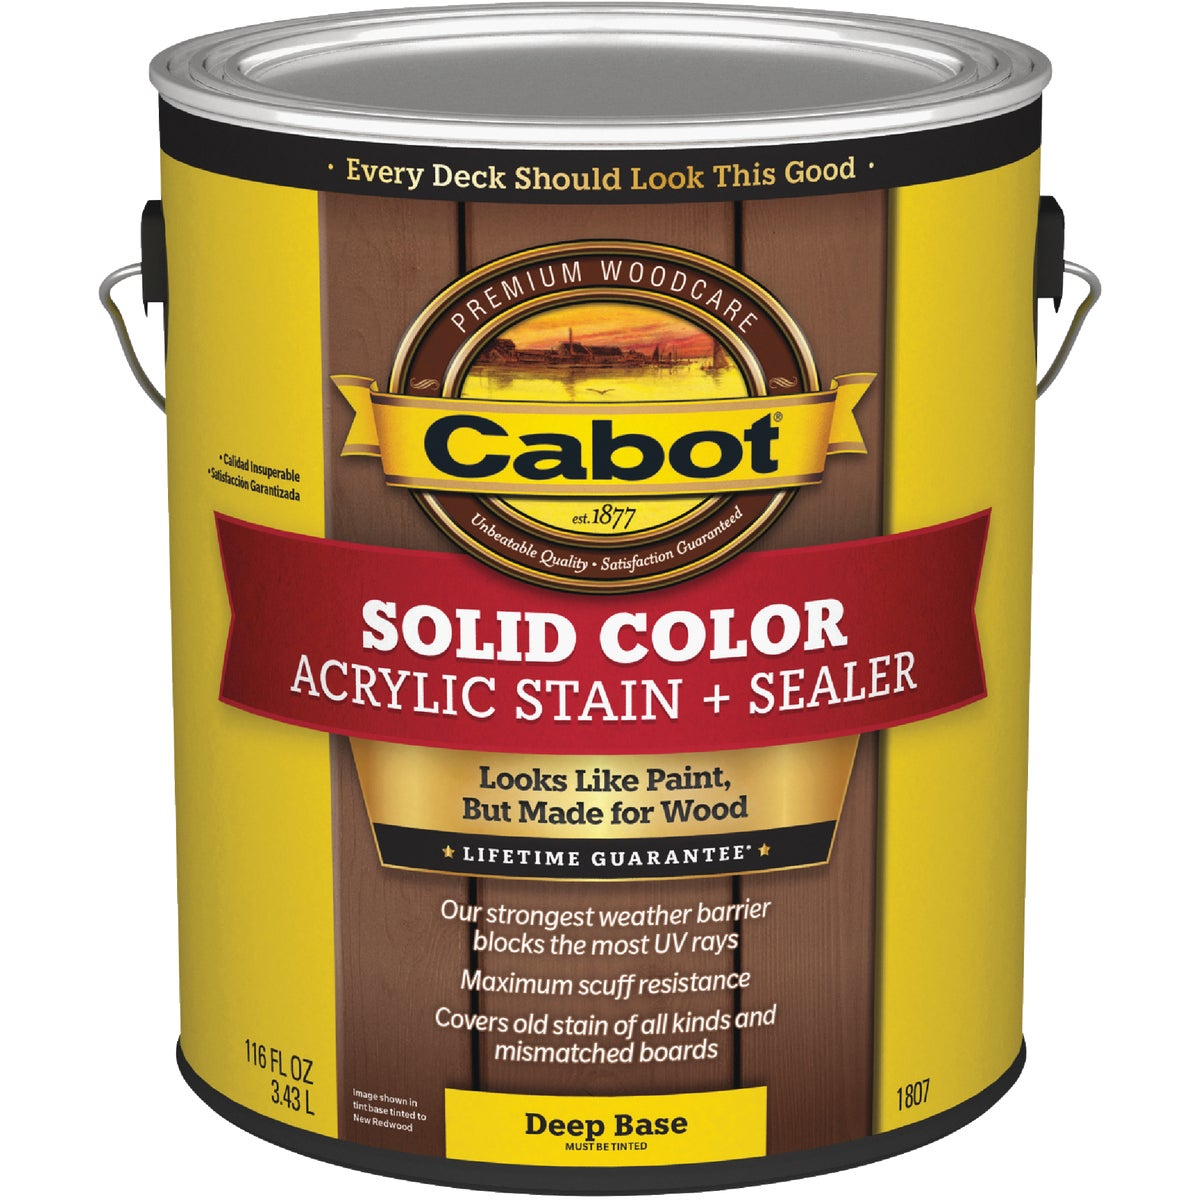 DEEP BS SOLID DECK STAIN - 140.0001807.007 by Valspar Corp